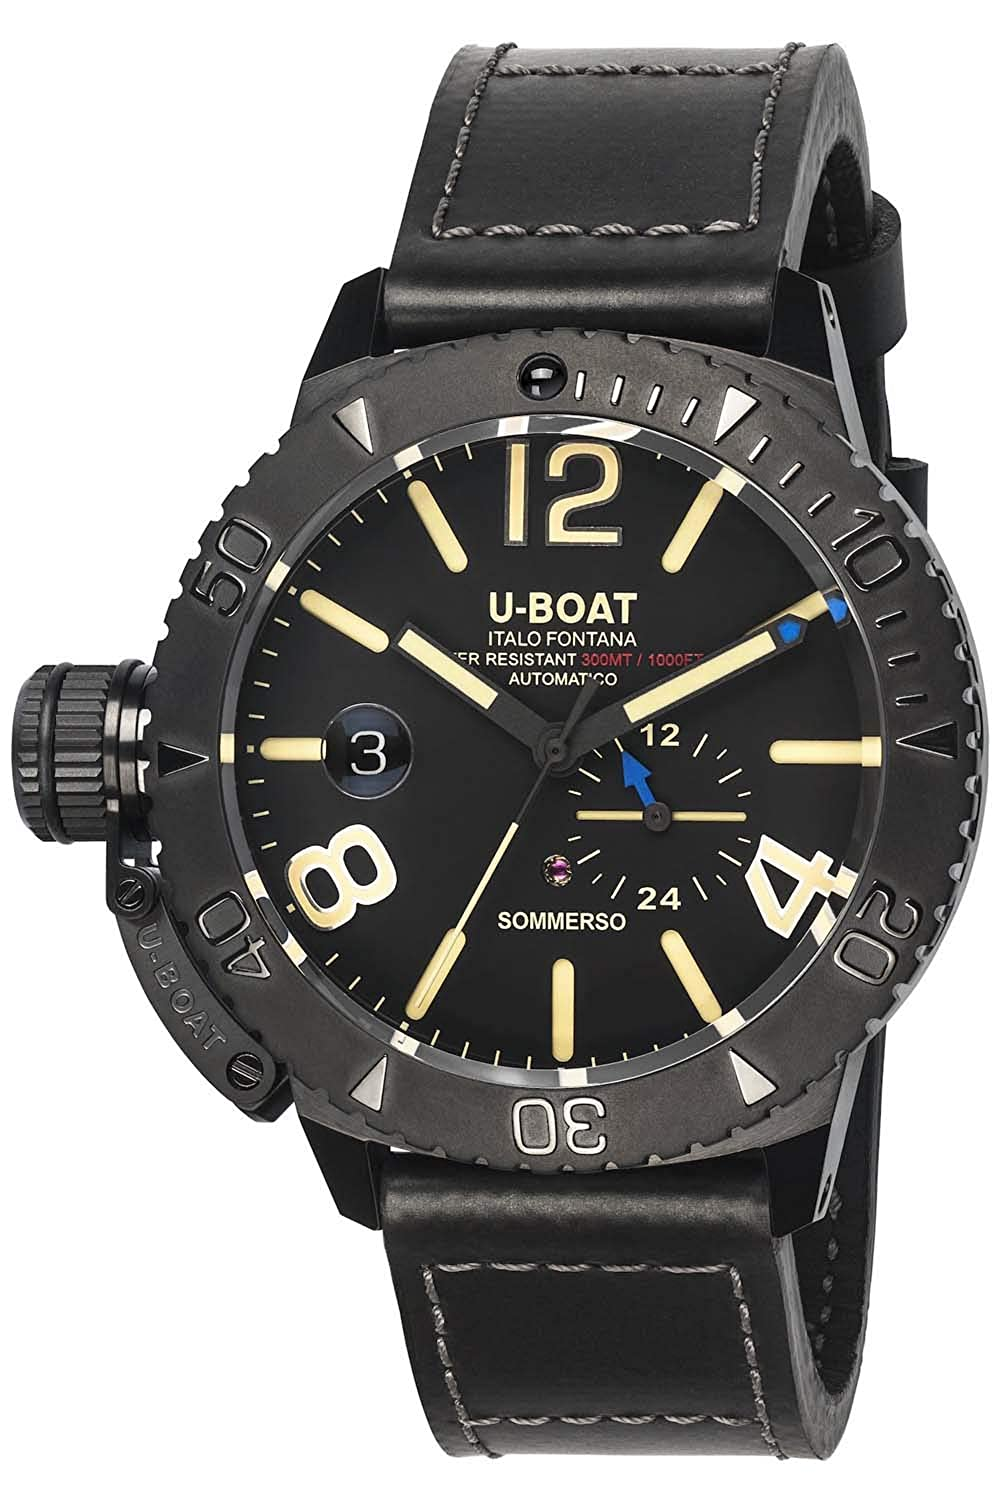 u boat sommerso  : U-boat sommerso 9015 Mens Automatic-self-Wind Watch: Watches